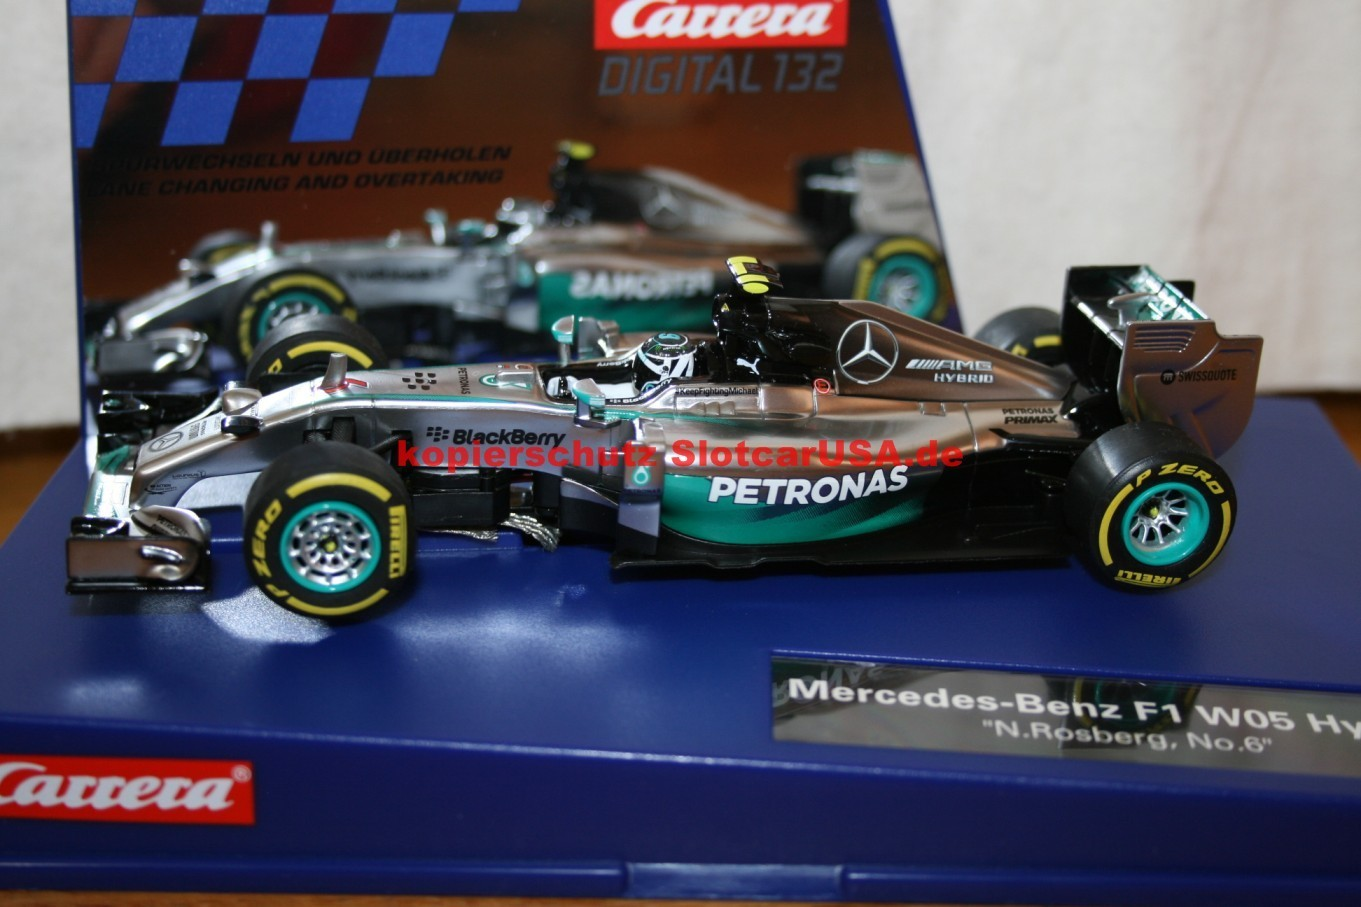 Mercedes benz f1 w05 hybrid nico rosberg nr 6 slotcarusa for Mercedes benz f1 shop